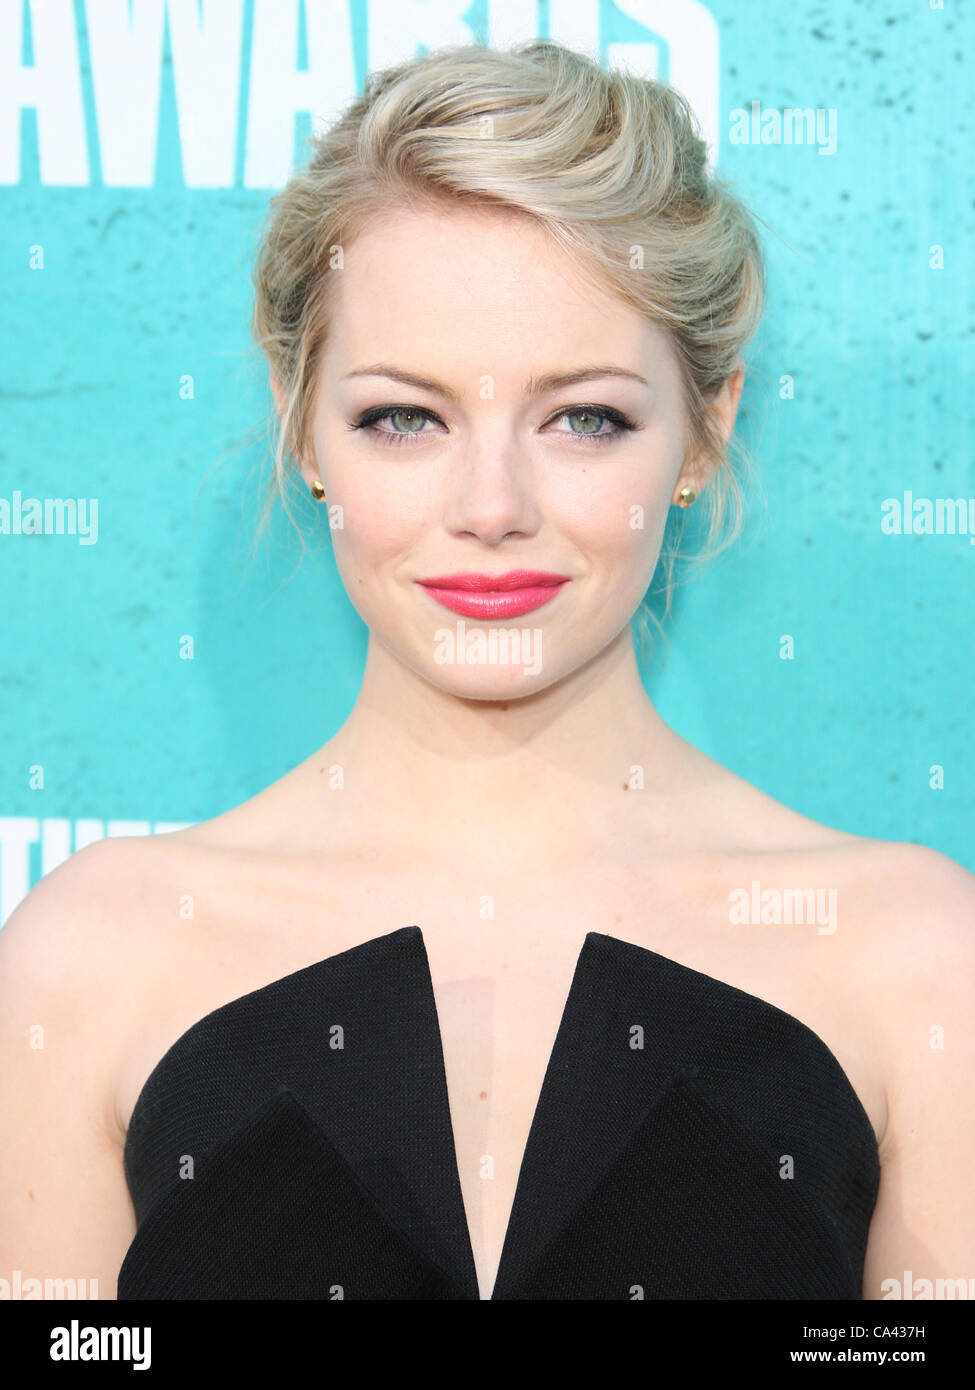 EMMA STONE THE MTV MOVIE AWARDS 2012. ARRIVALS LOS ANGELES CALIFORNIA USA 03 June 2012 - Stock Image